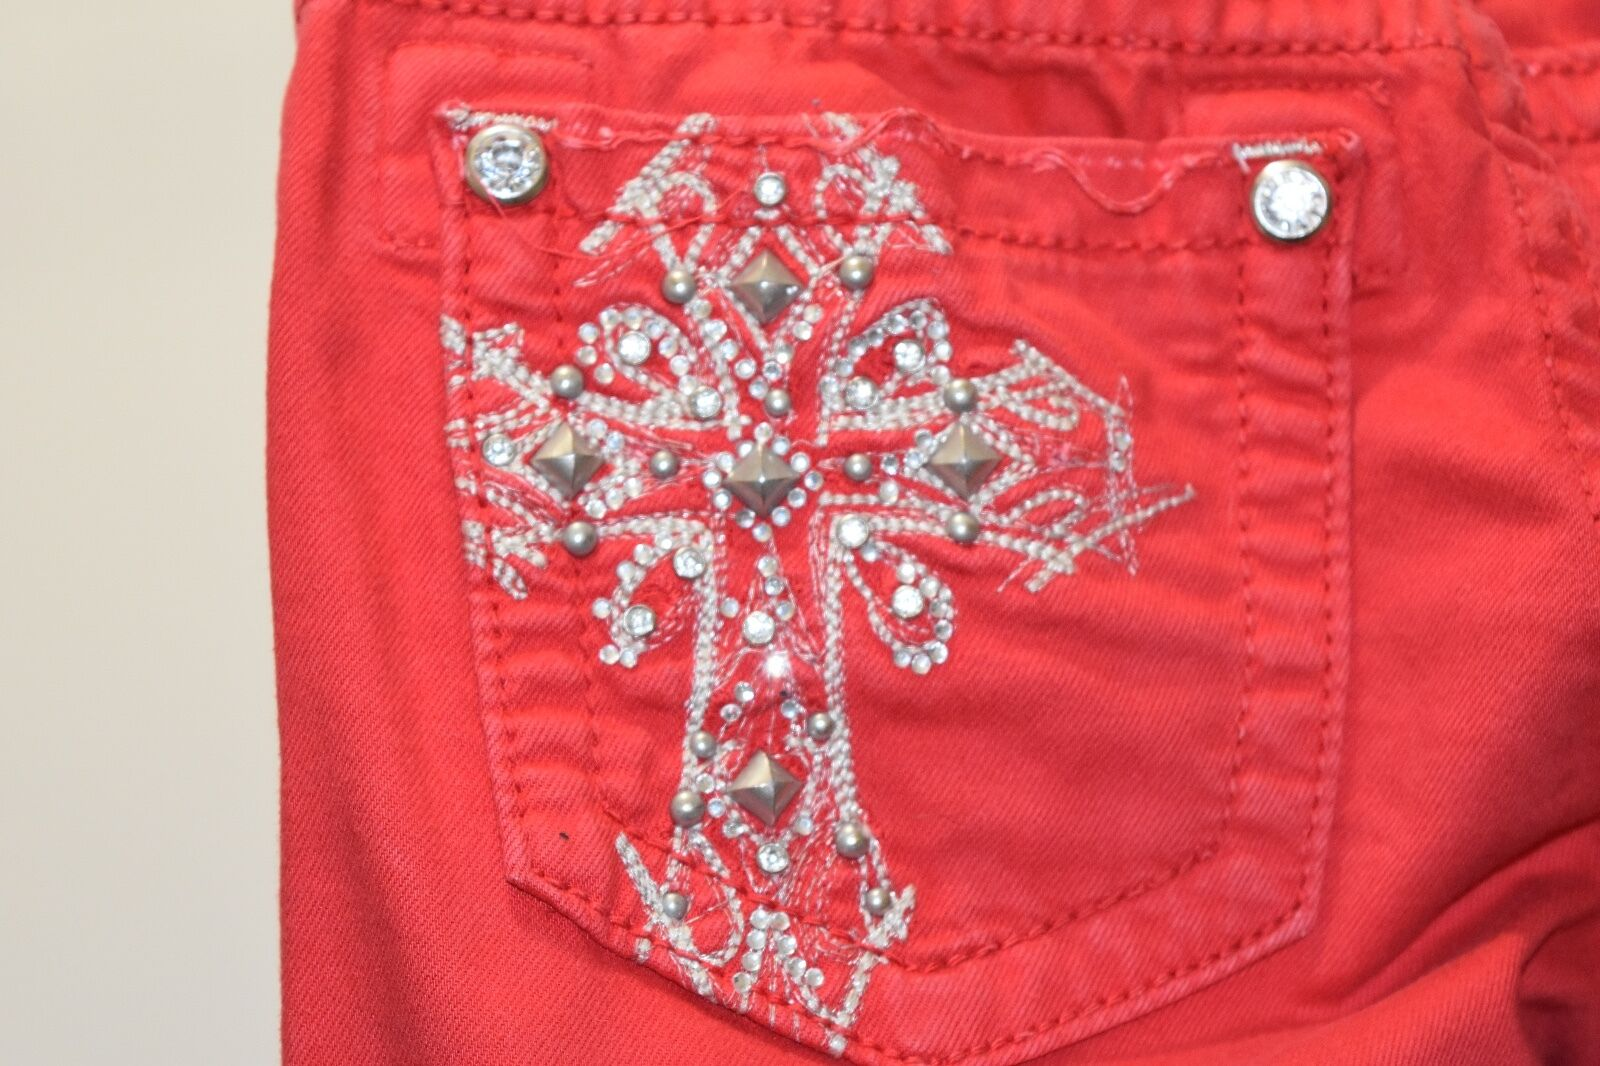 Women's Miss Me JP045510 Skinny Bright Red Jeans Size 27